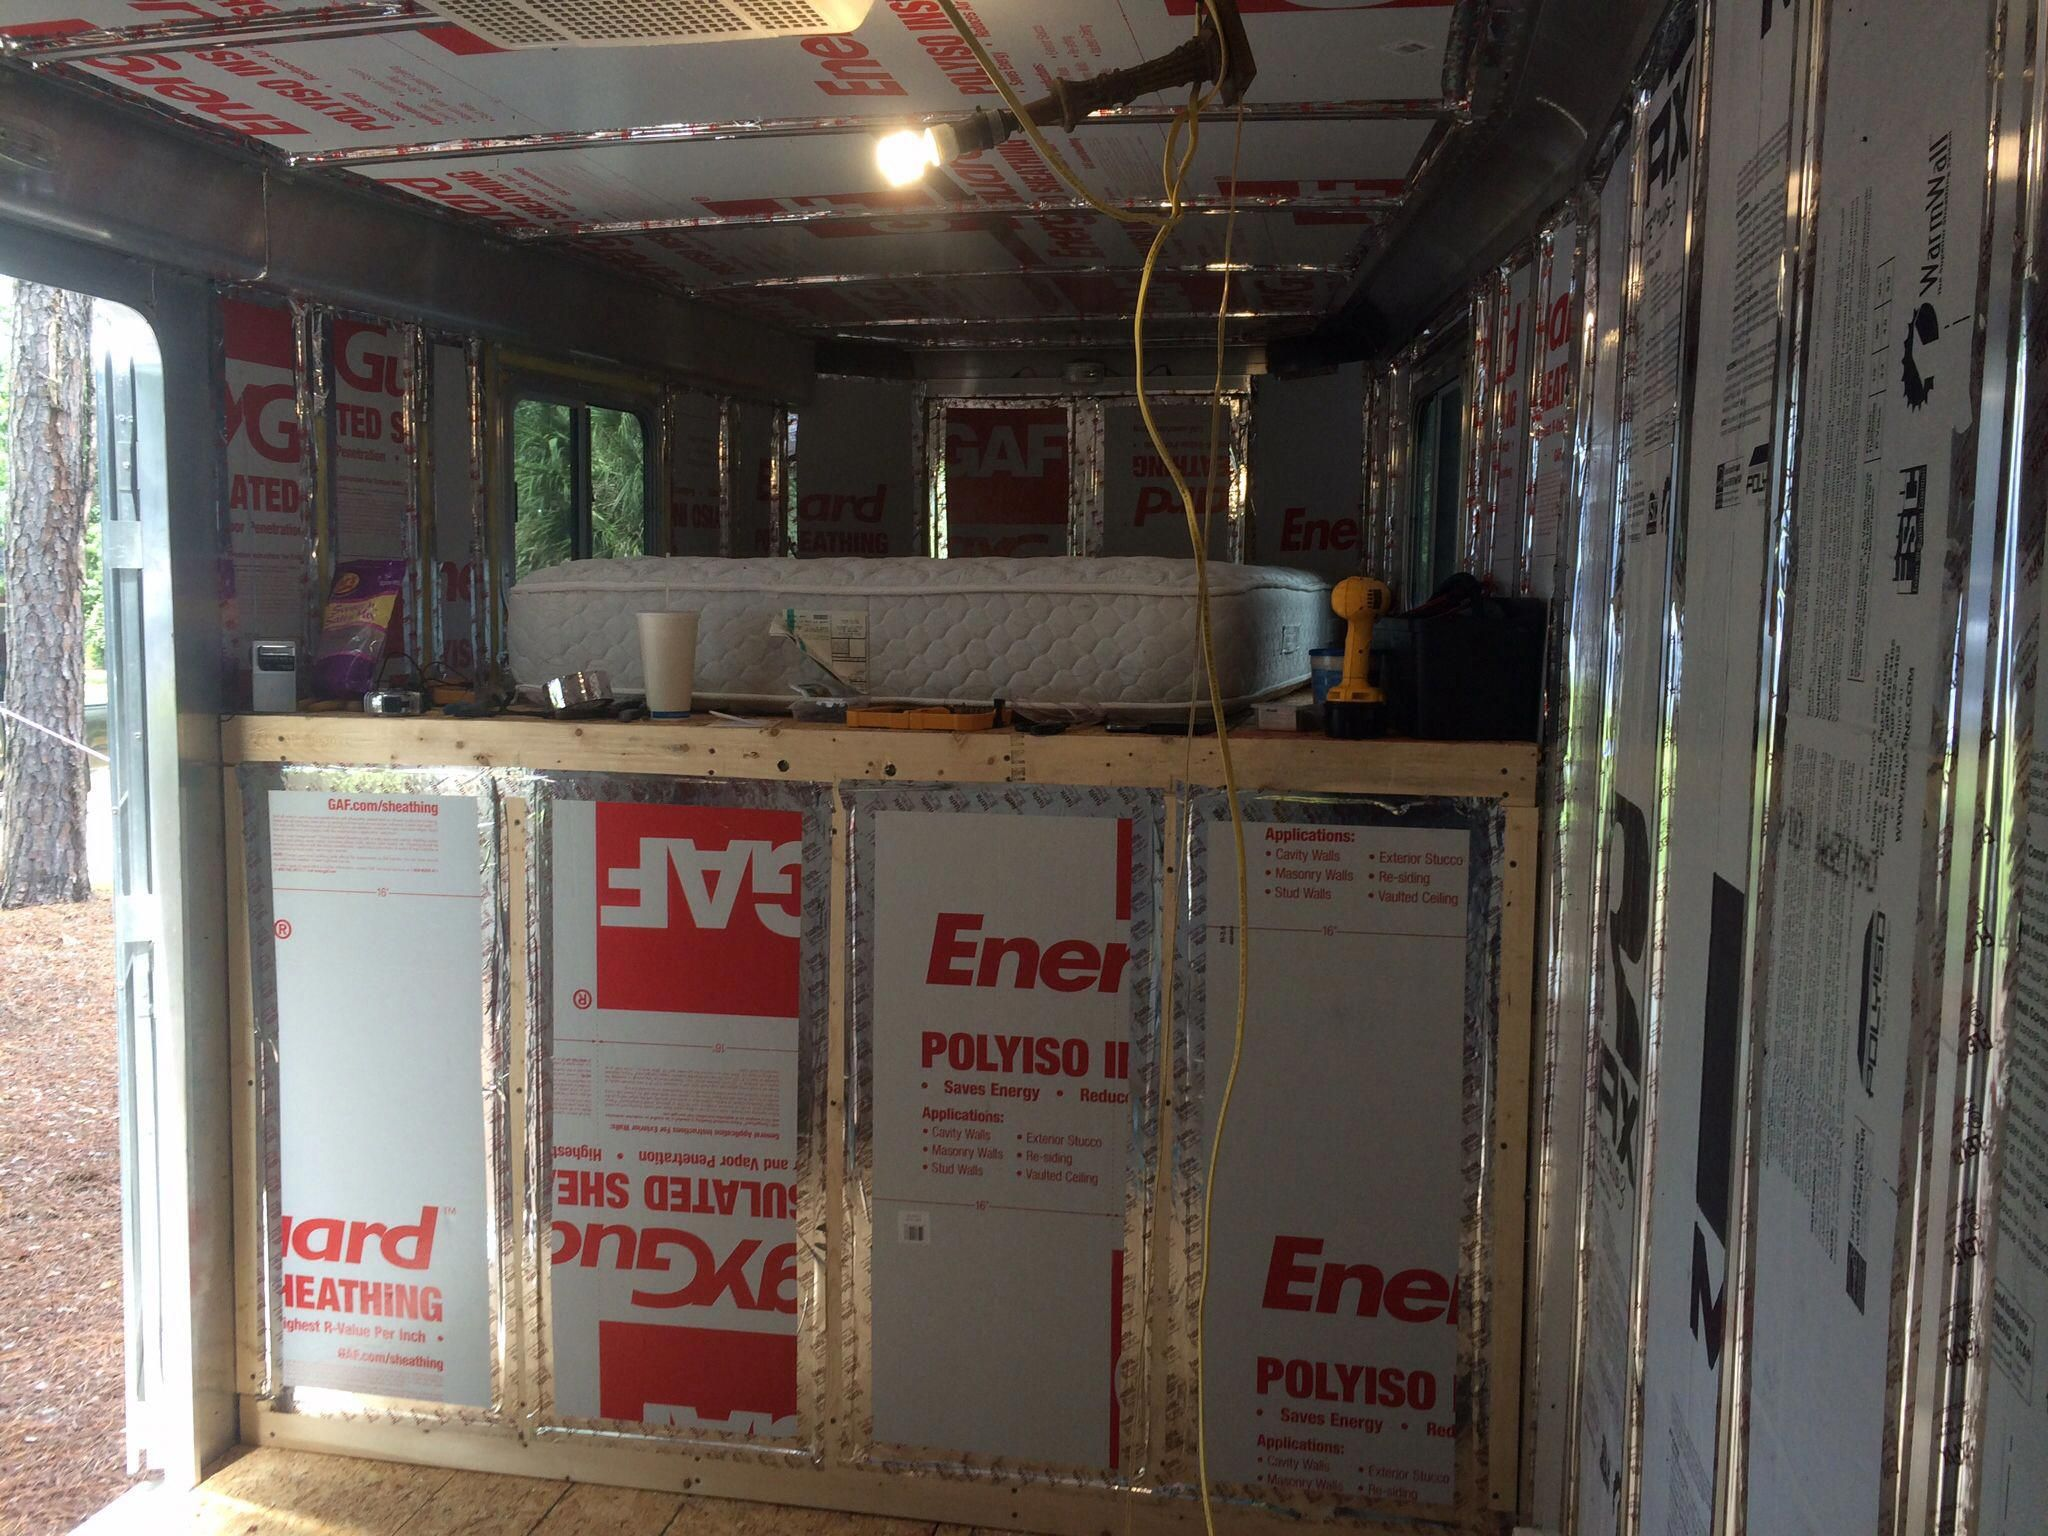 Pin By Patrick Drummond On Horse Trailer Living Quarters In 2020 Horse Trailer Horse Trailer Living Quarters Stock Trailer